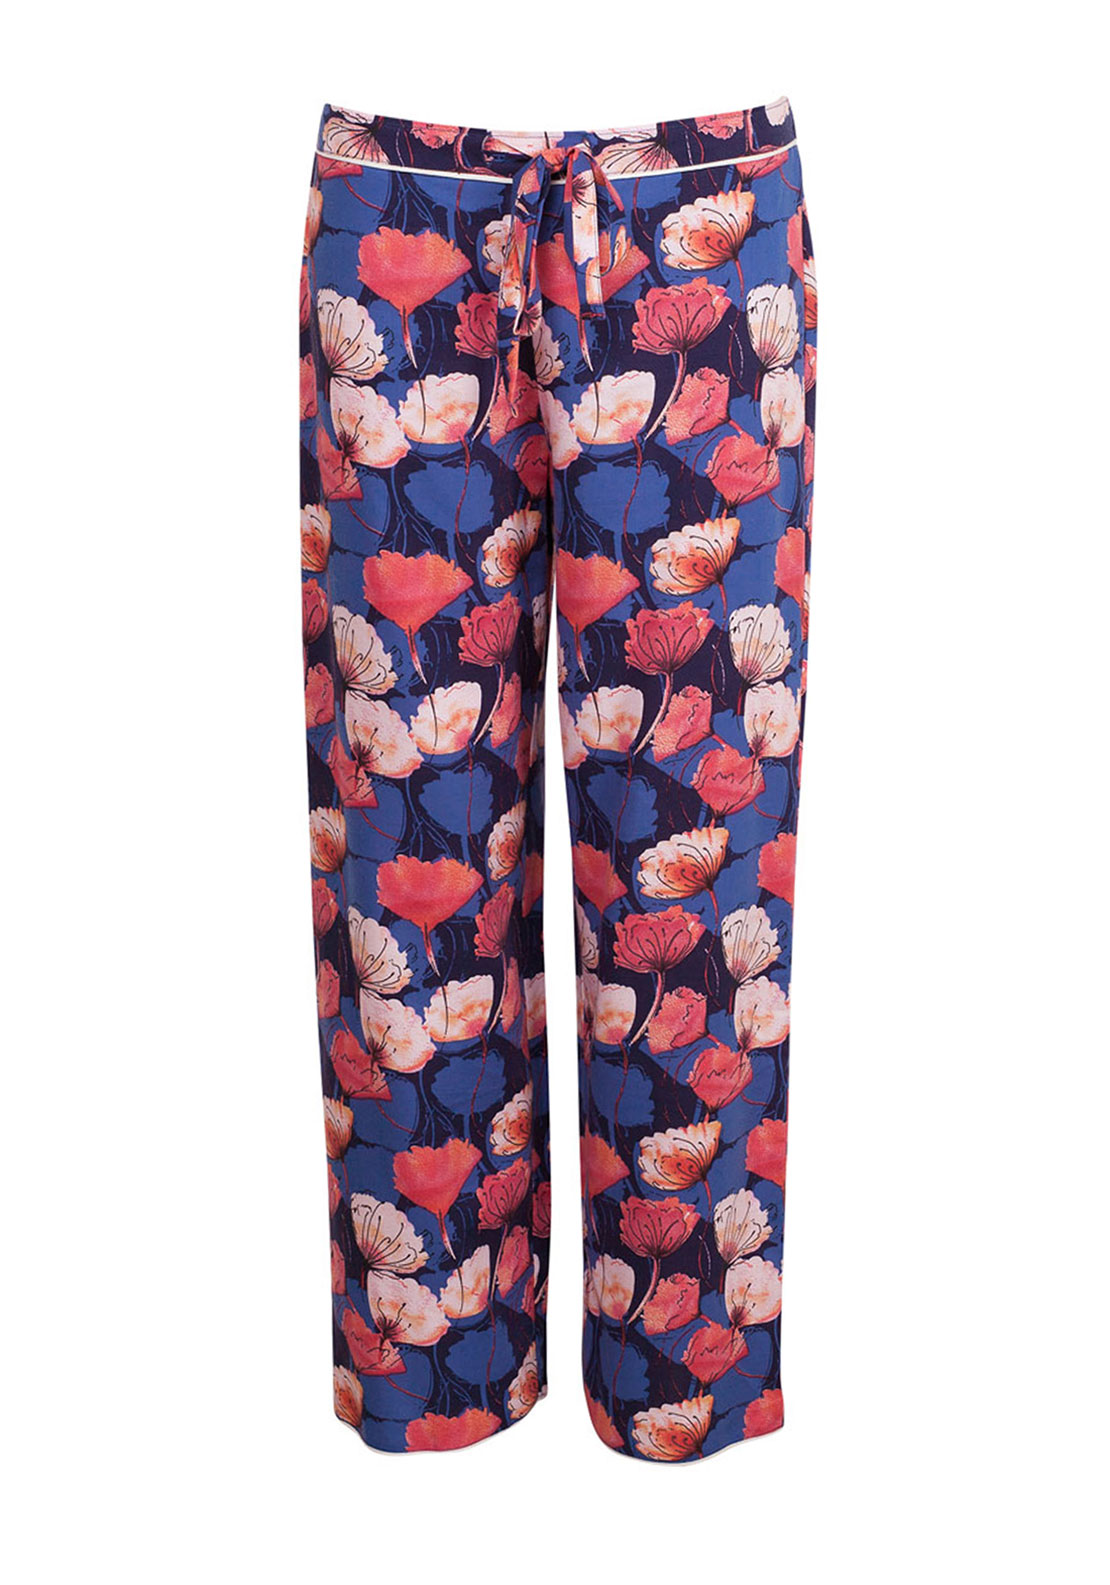 Cyberjammies Winter Flower Pyjama Bottoms, Dark Blue